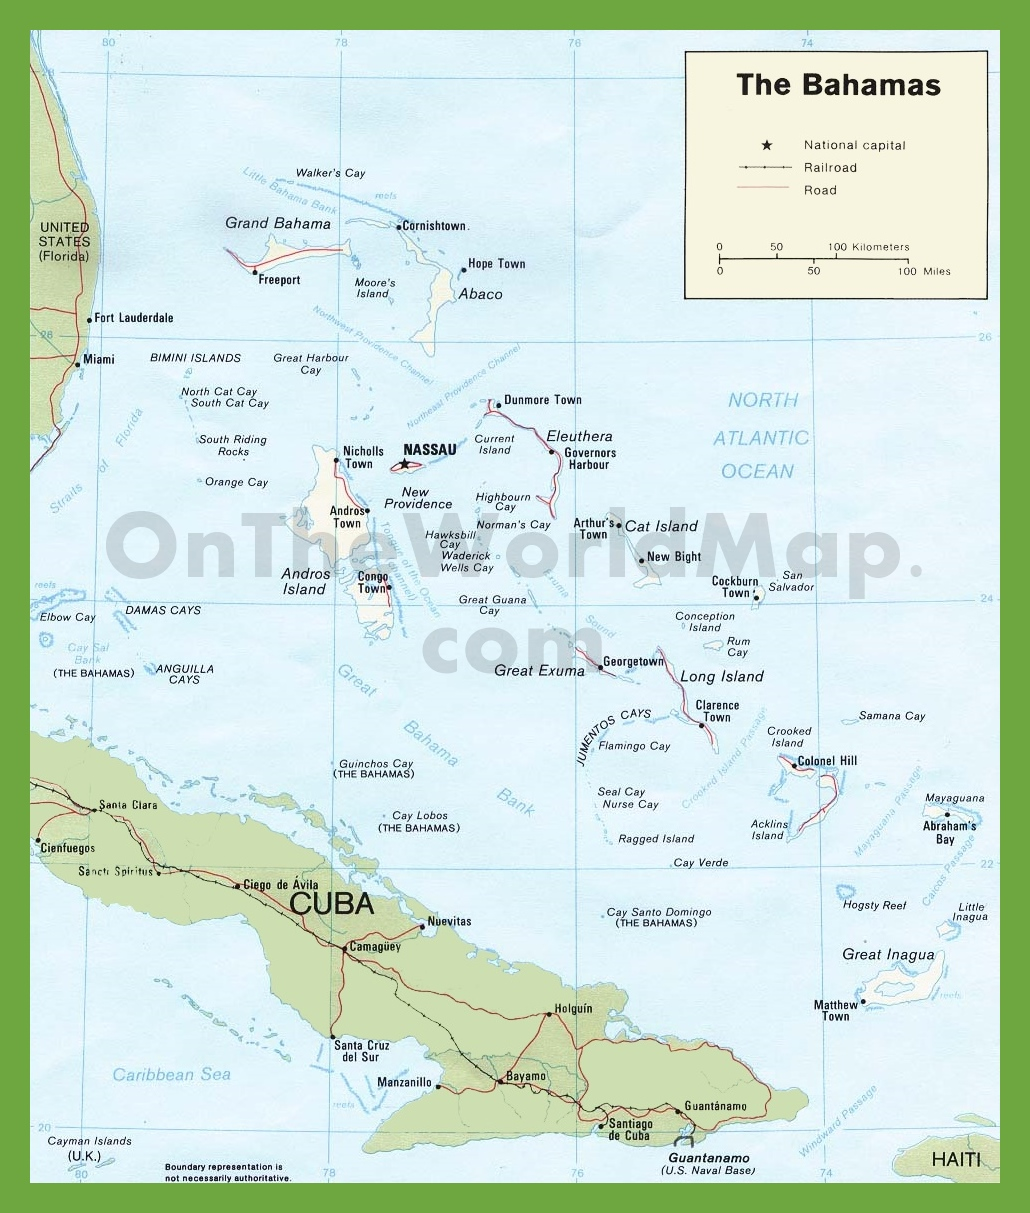 Road map of The Bahamas